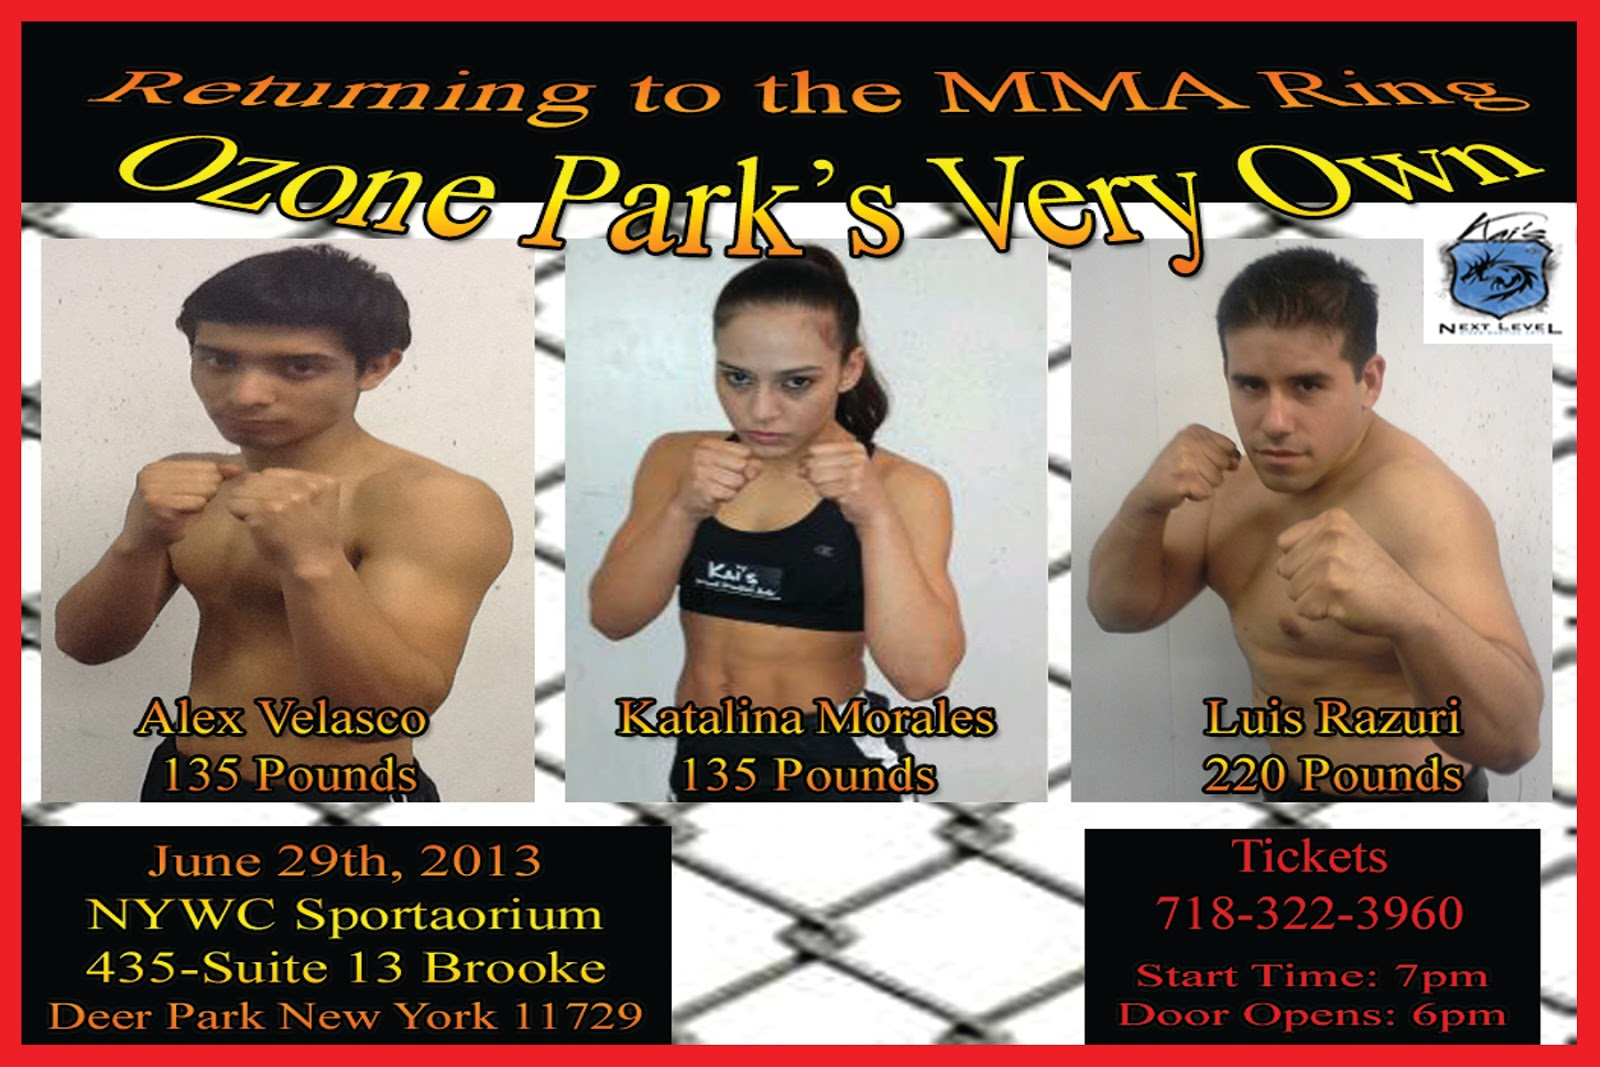 Special: MMA Ring Debuts of Kenneth Rayside, Suky Uppal